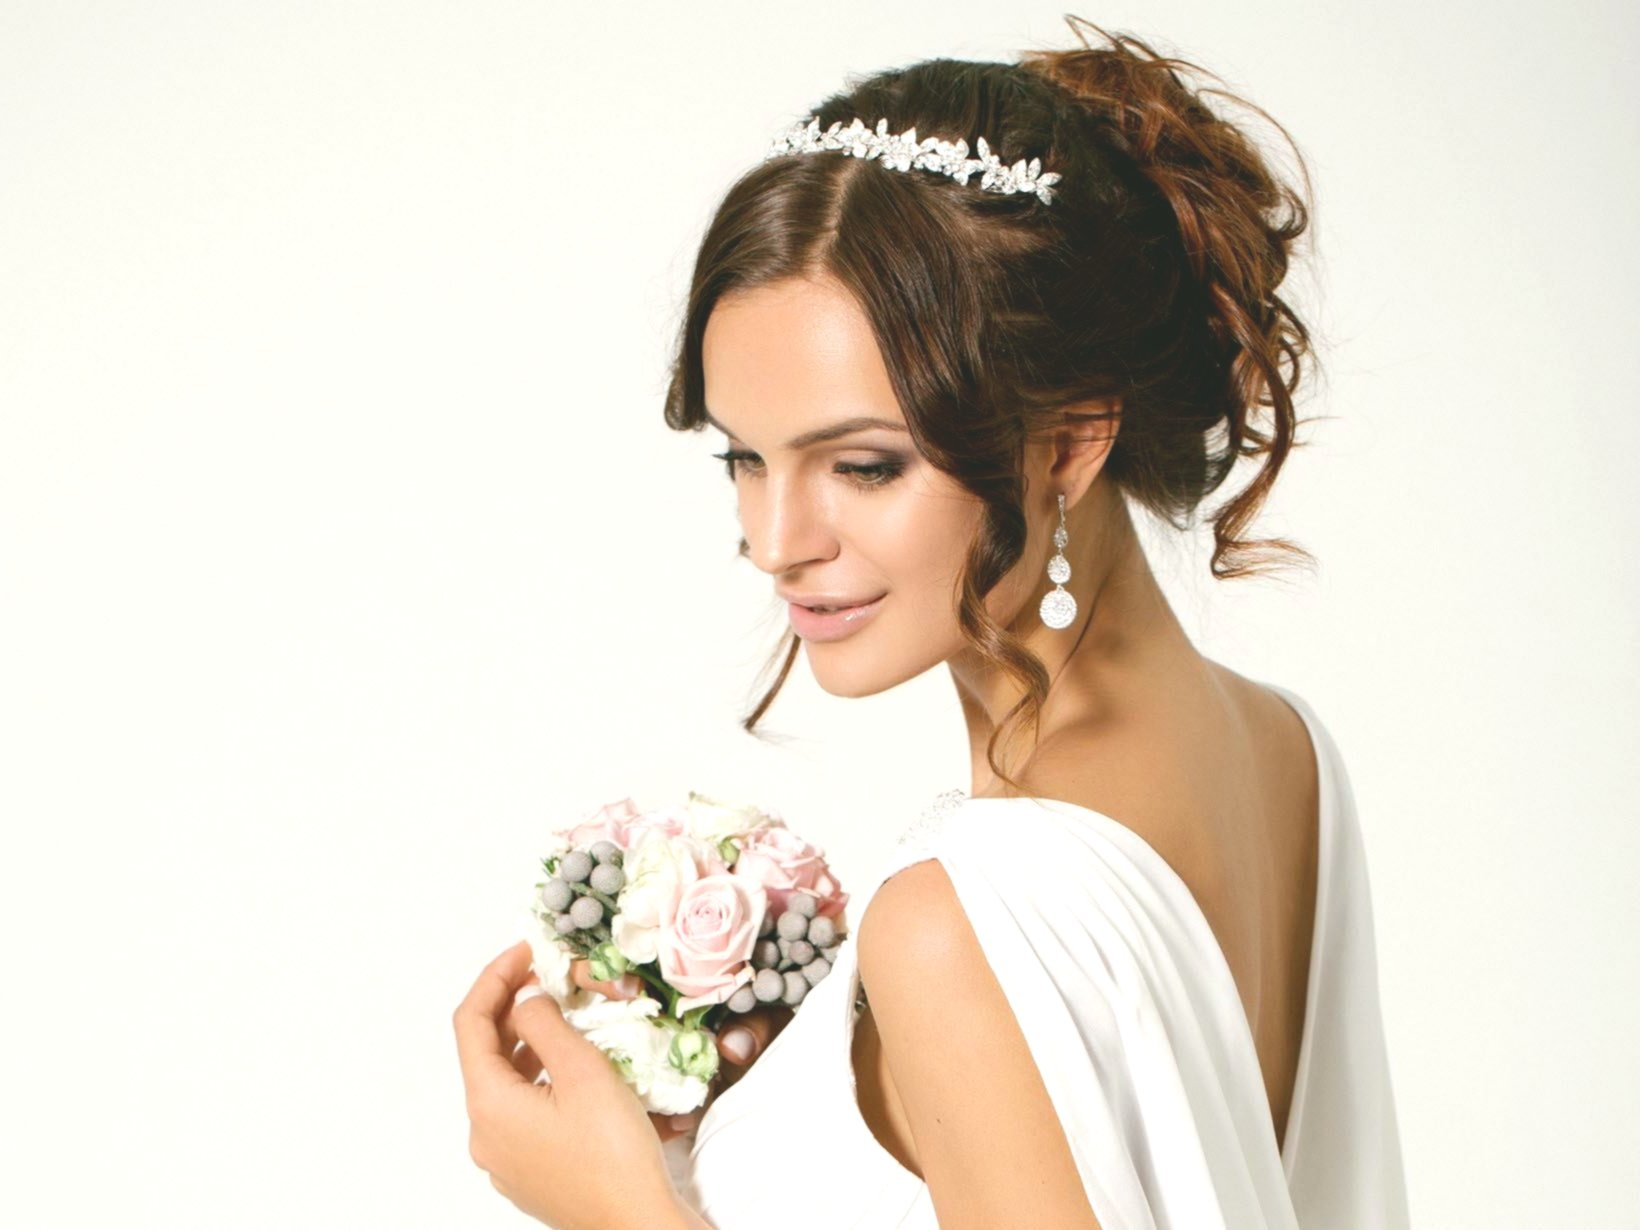 Excellent wedding hairstyles make your own gallery-Cool Wedding Hairstyles Do It Yourself Decor